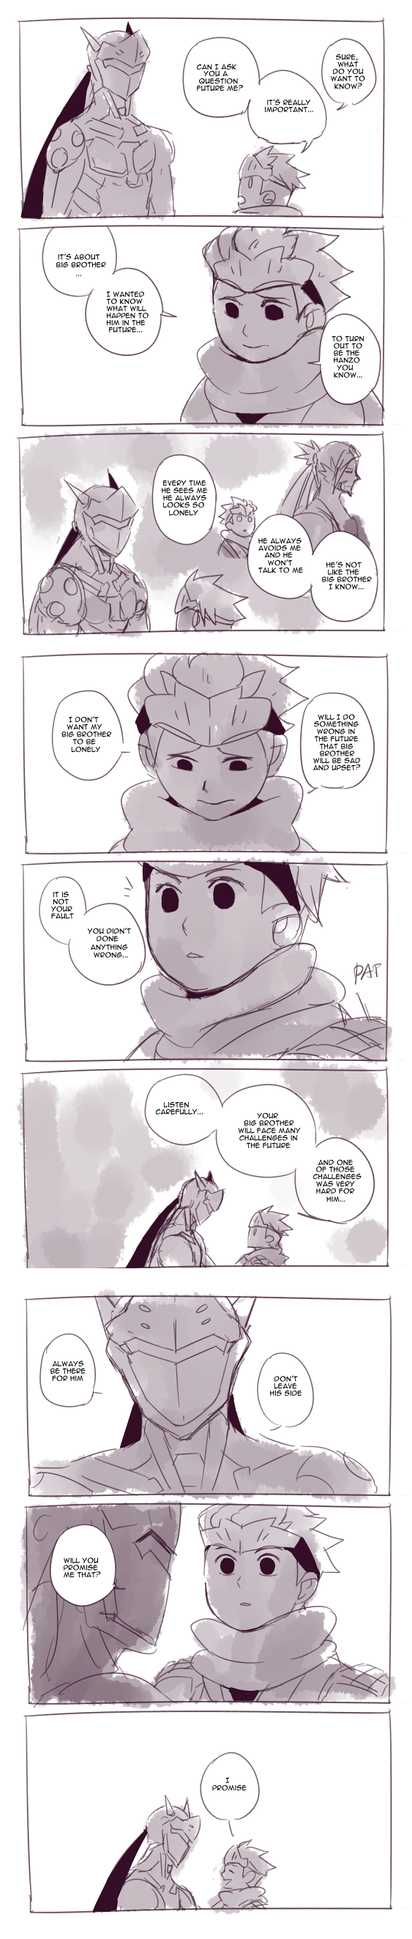 A Lil Promise (A Time Travel Shenanigans Comic) by Fruitloop-chan